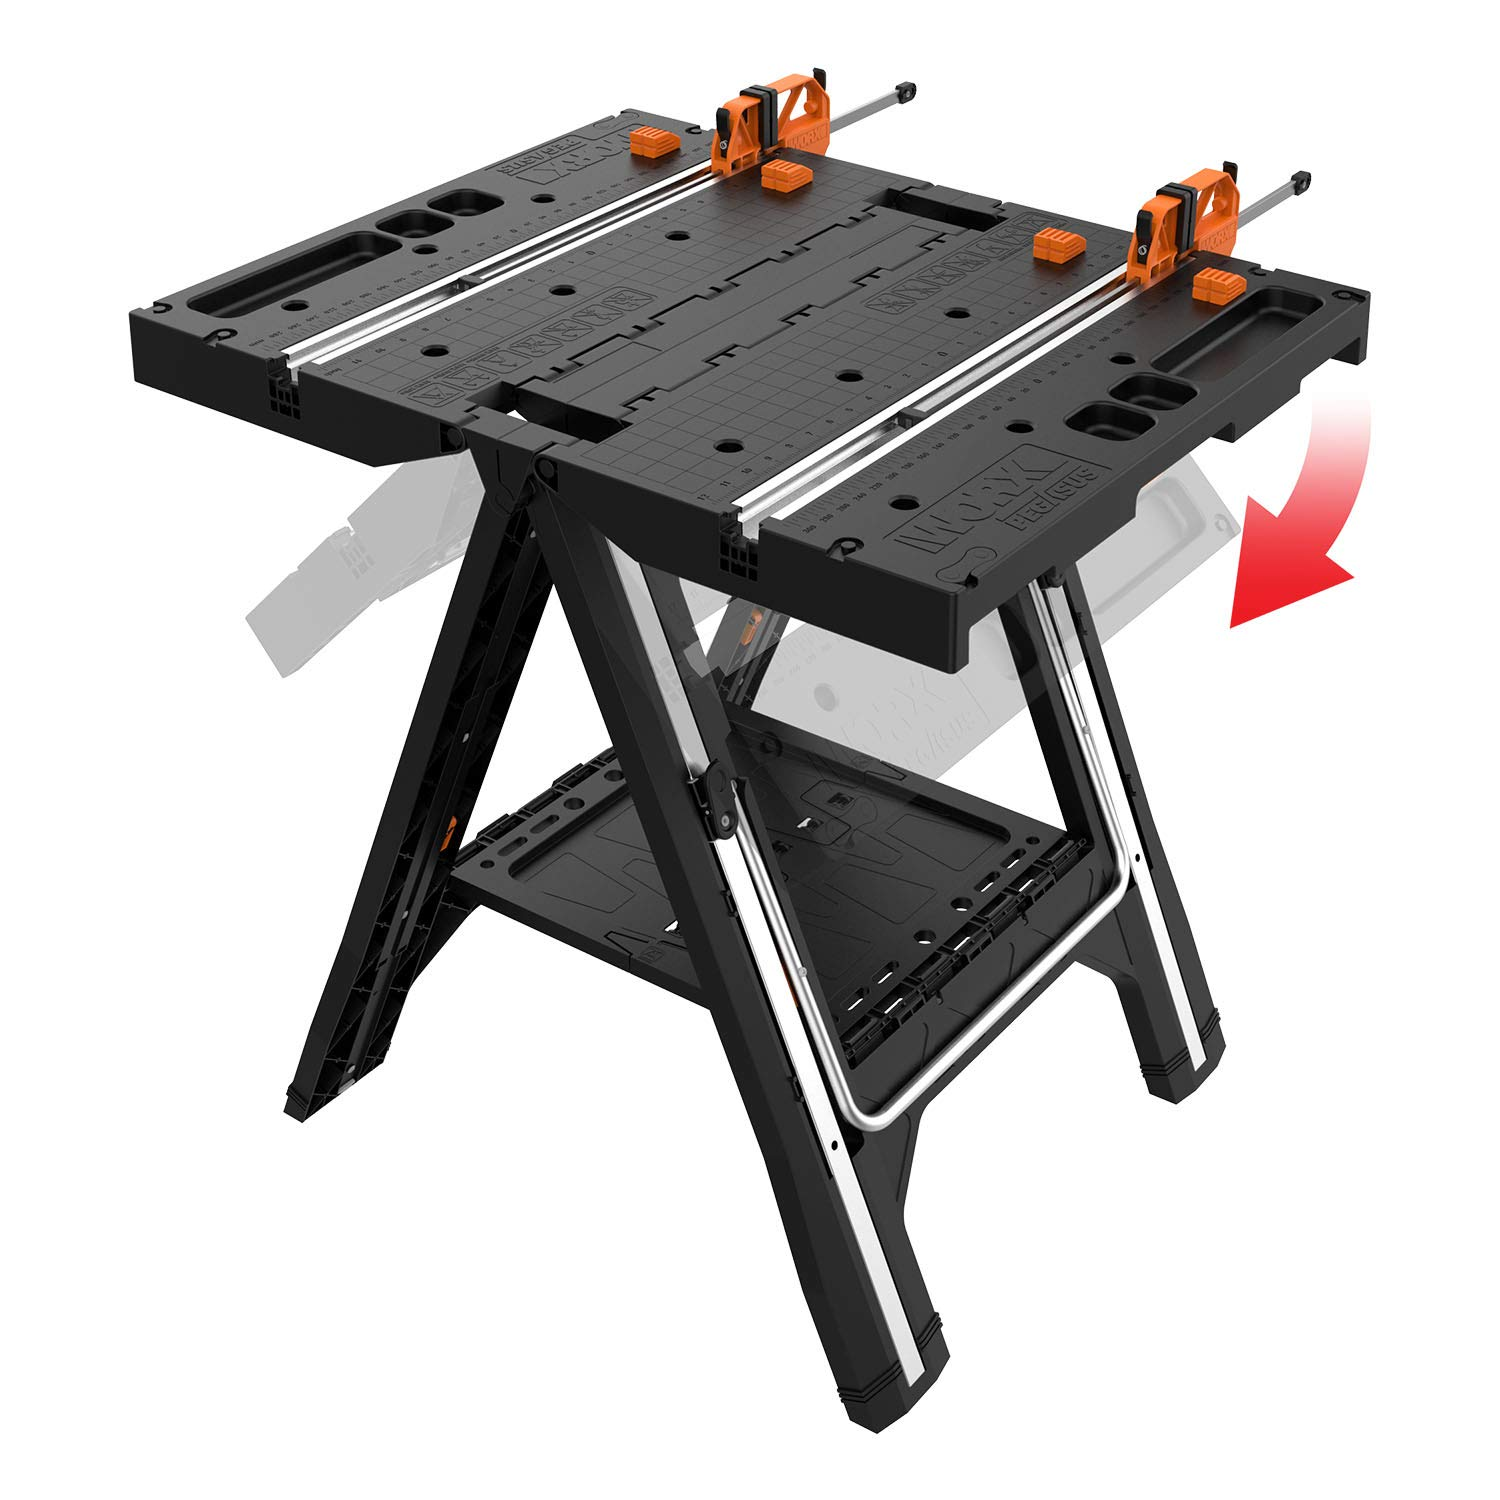 WORX Pegasus Multi-Function Work Table and Sawhorse}